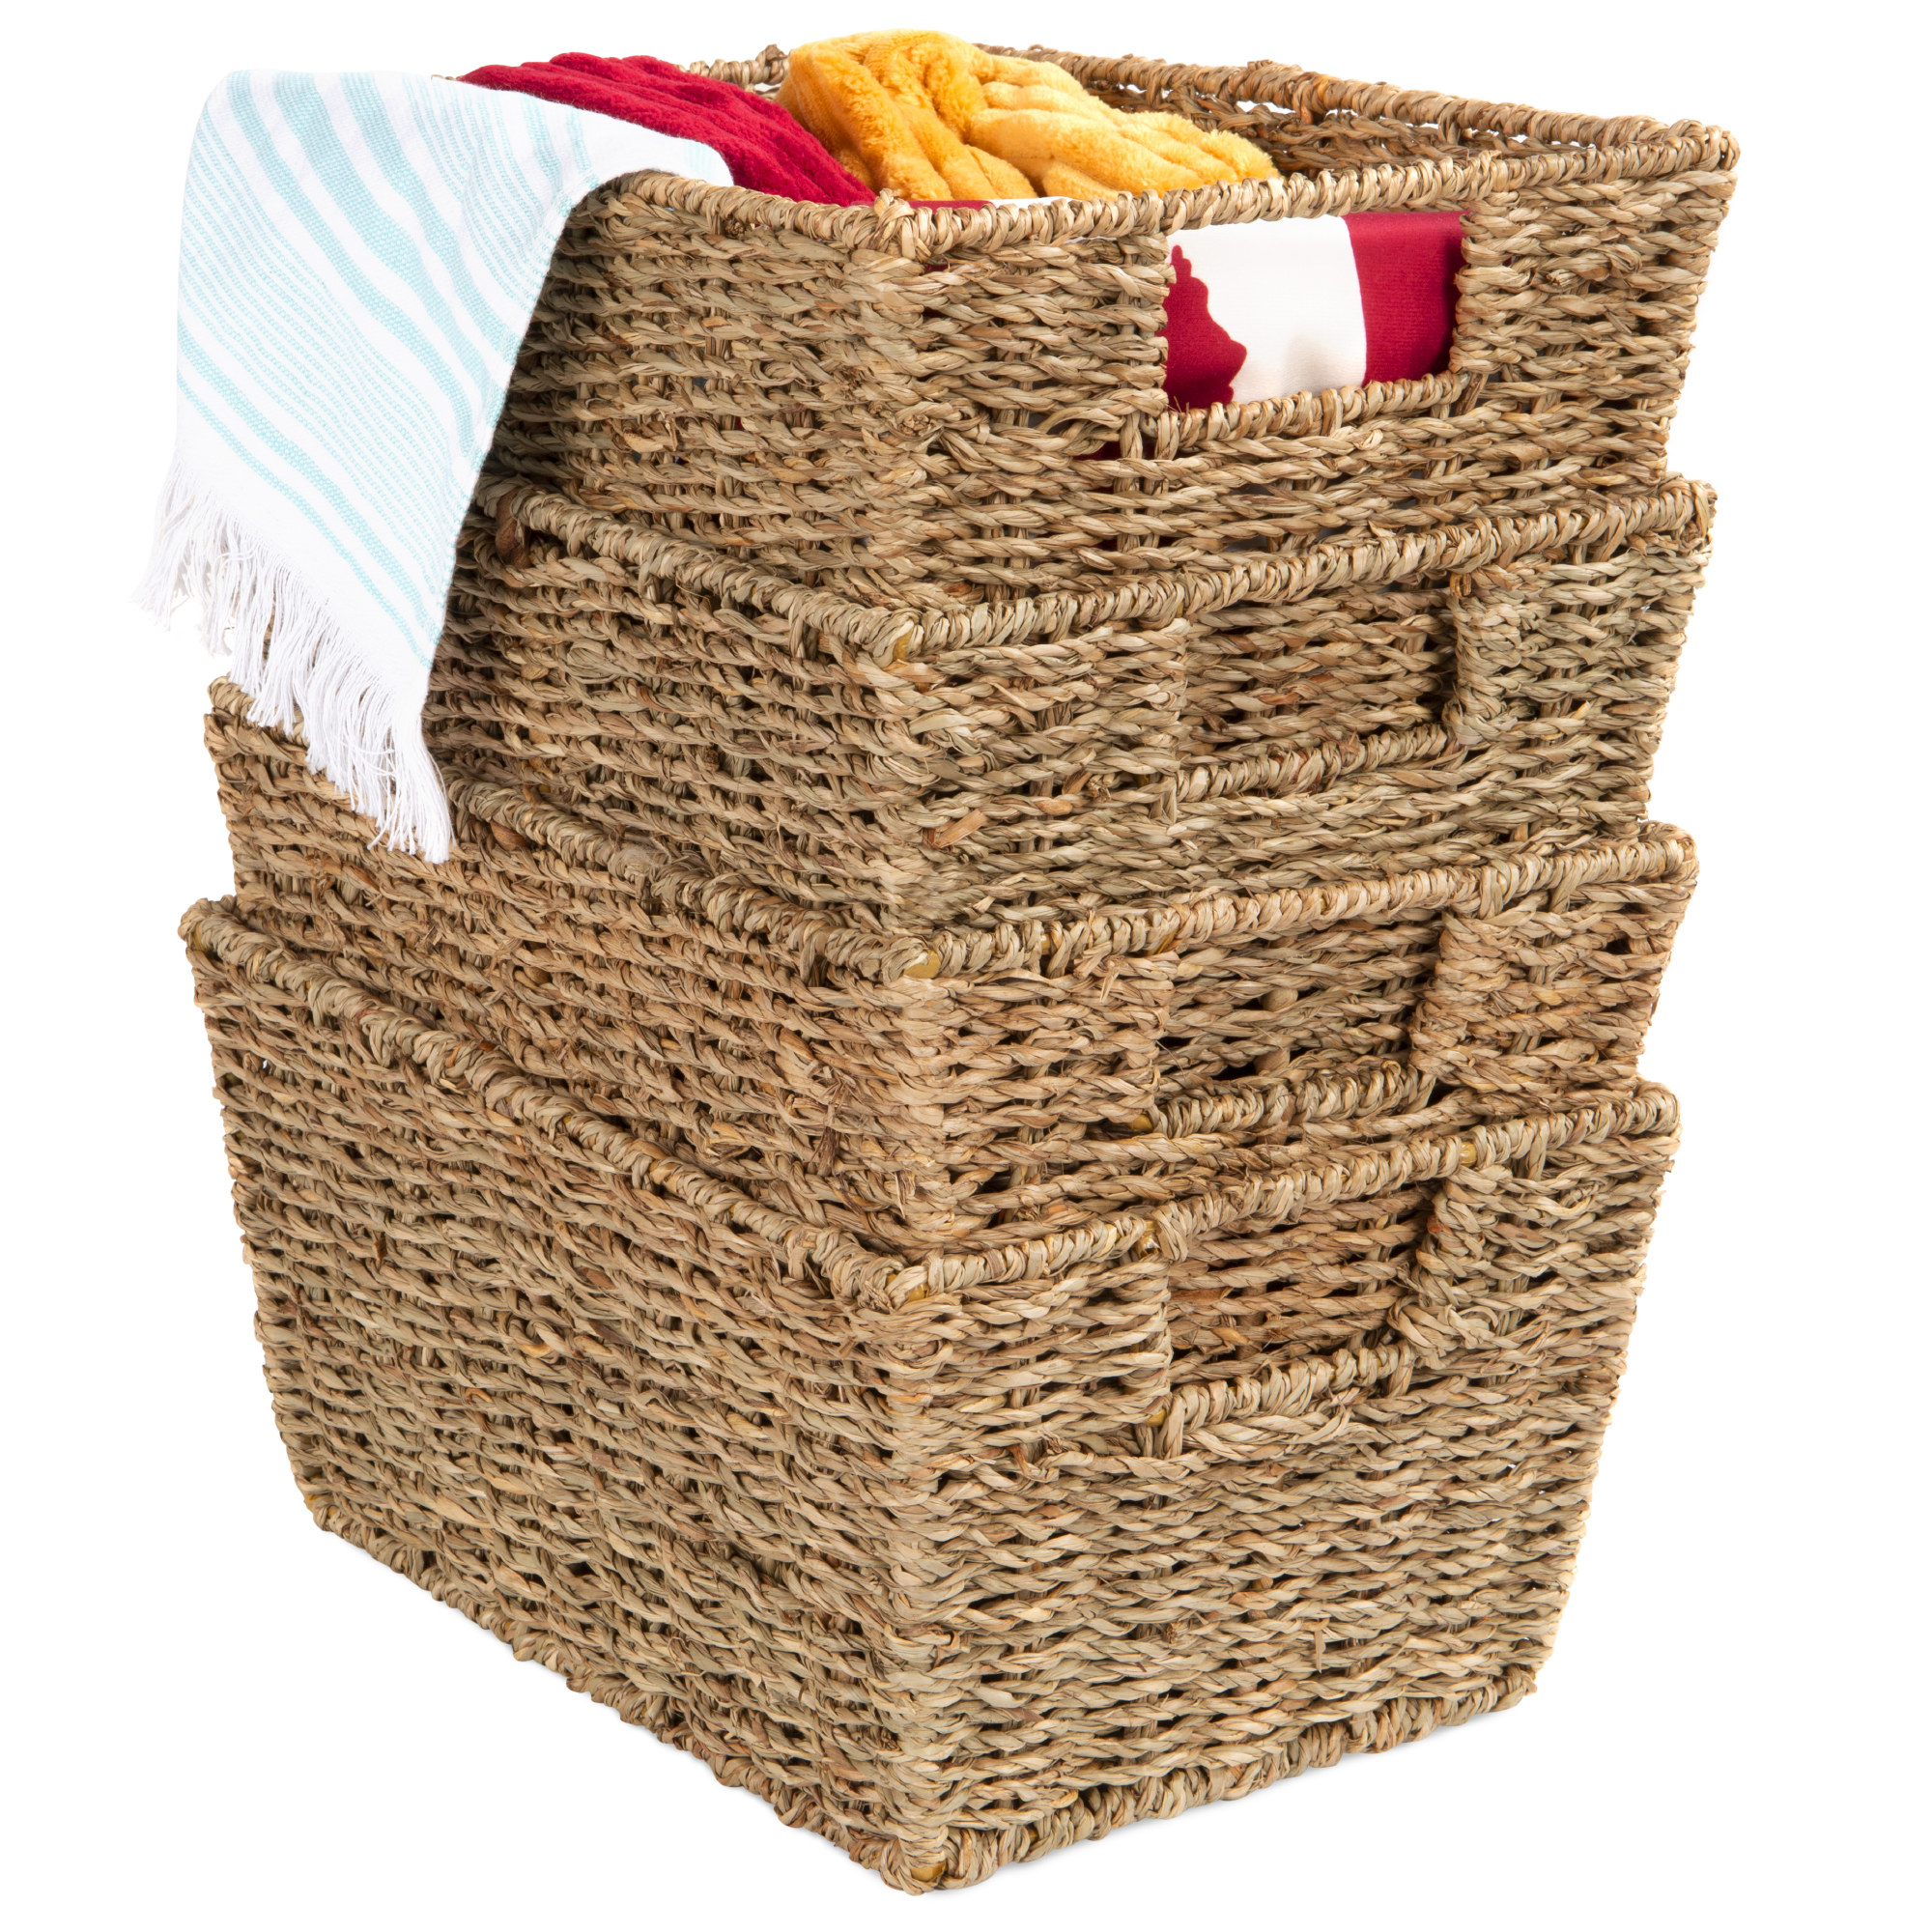 Stackable seagrass baskets